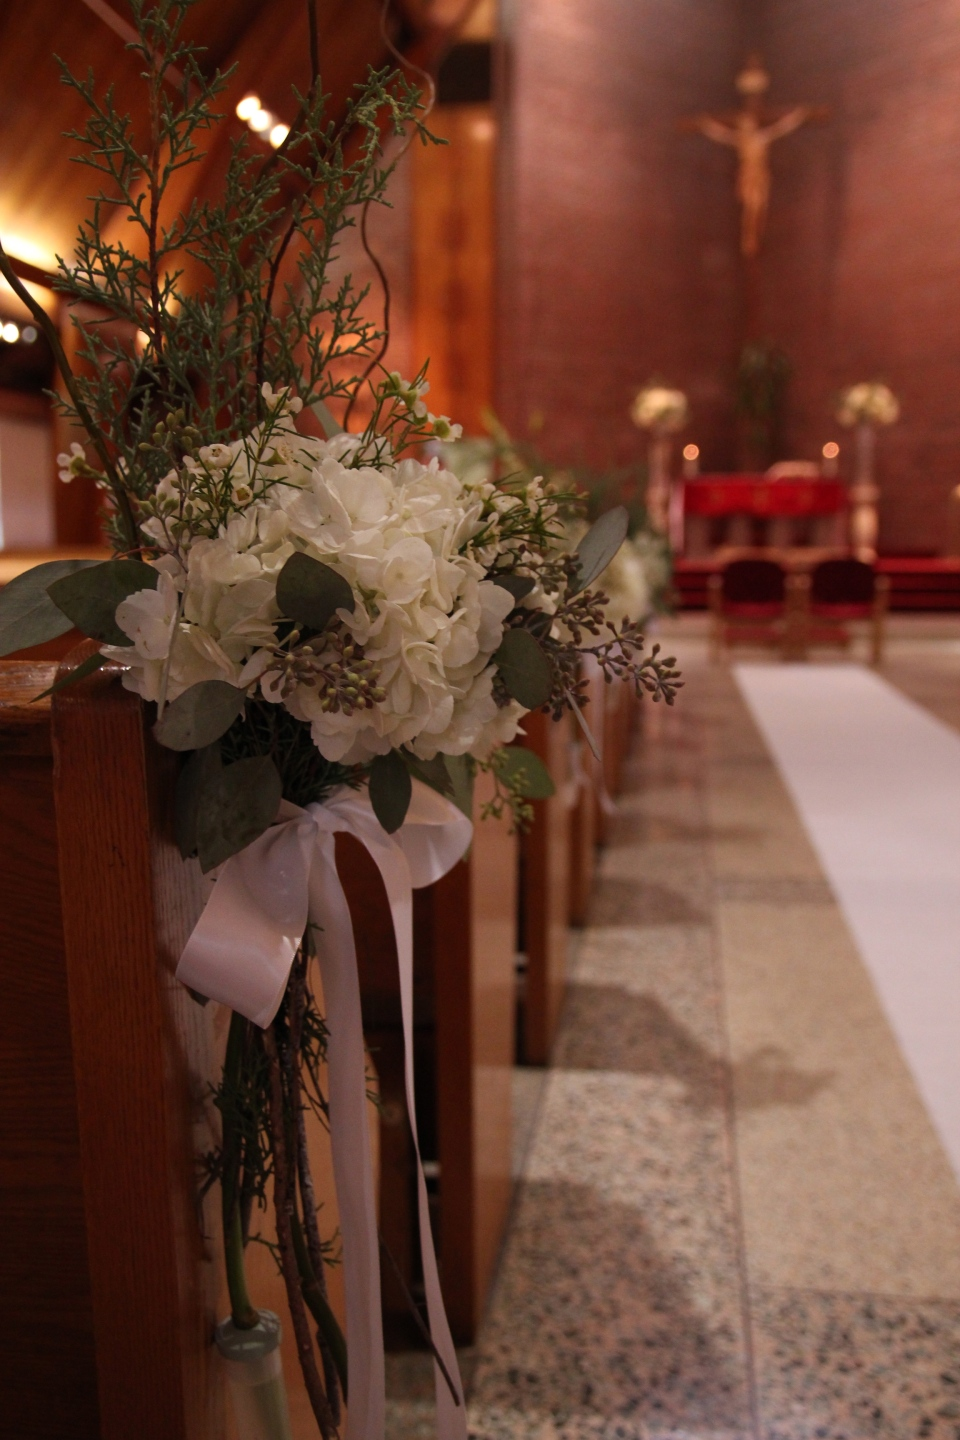 Pew markers of hydrangea, wax flower, evergreens & curly willow tied with white satin ribbon.